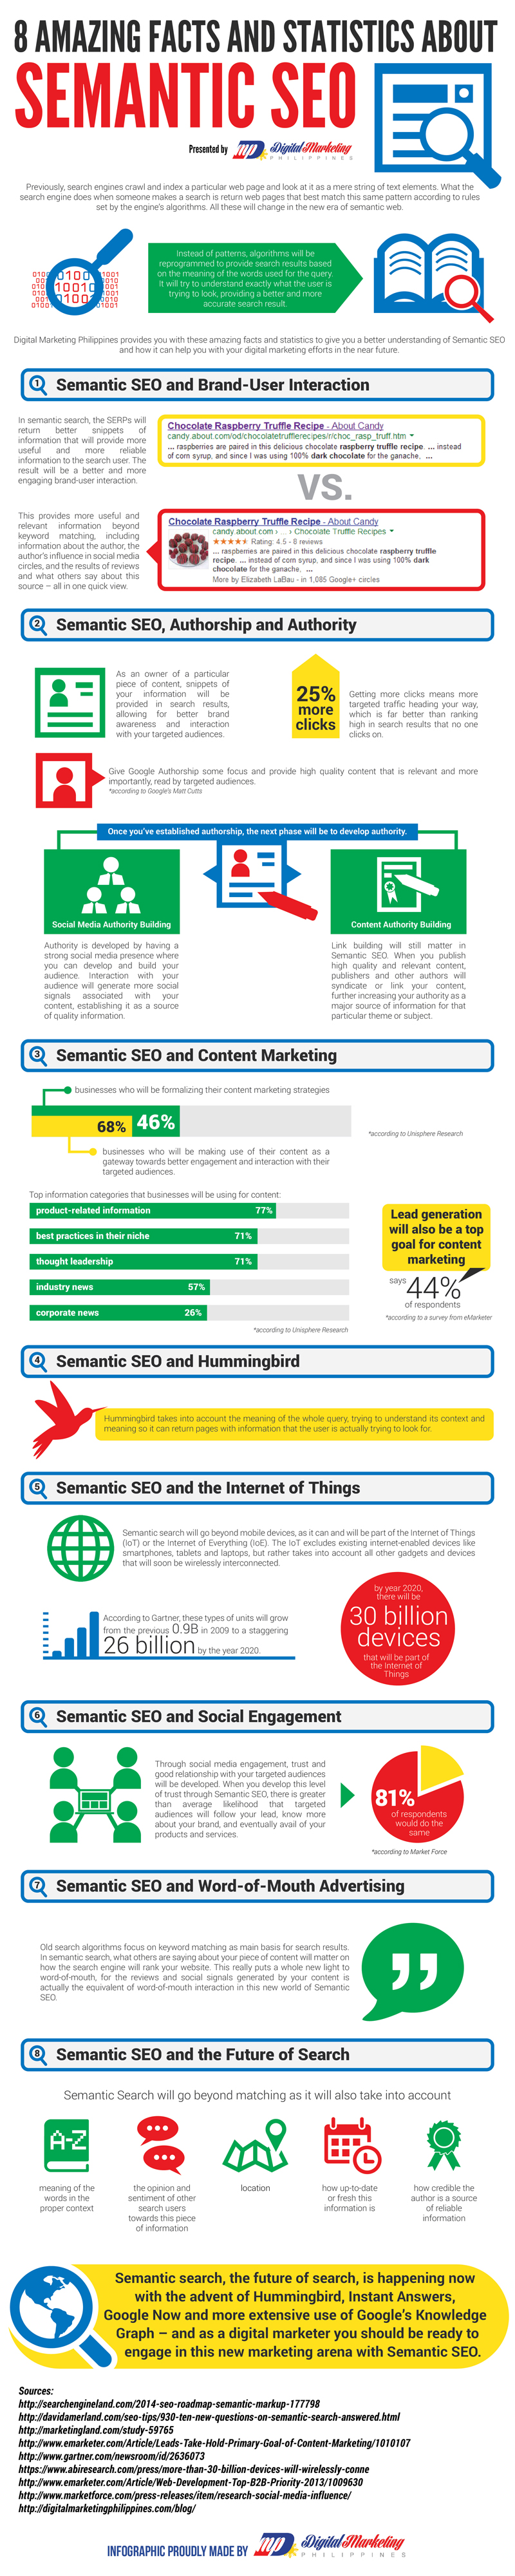 8 Amazing Facts and Statistics about Semantic SEO (Infographic) - An Infographic from Digital Marketing Philippines